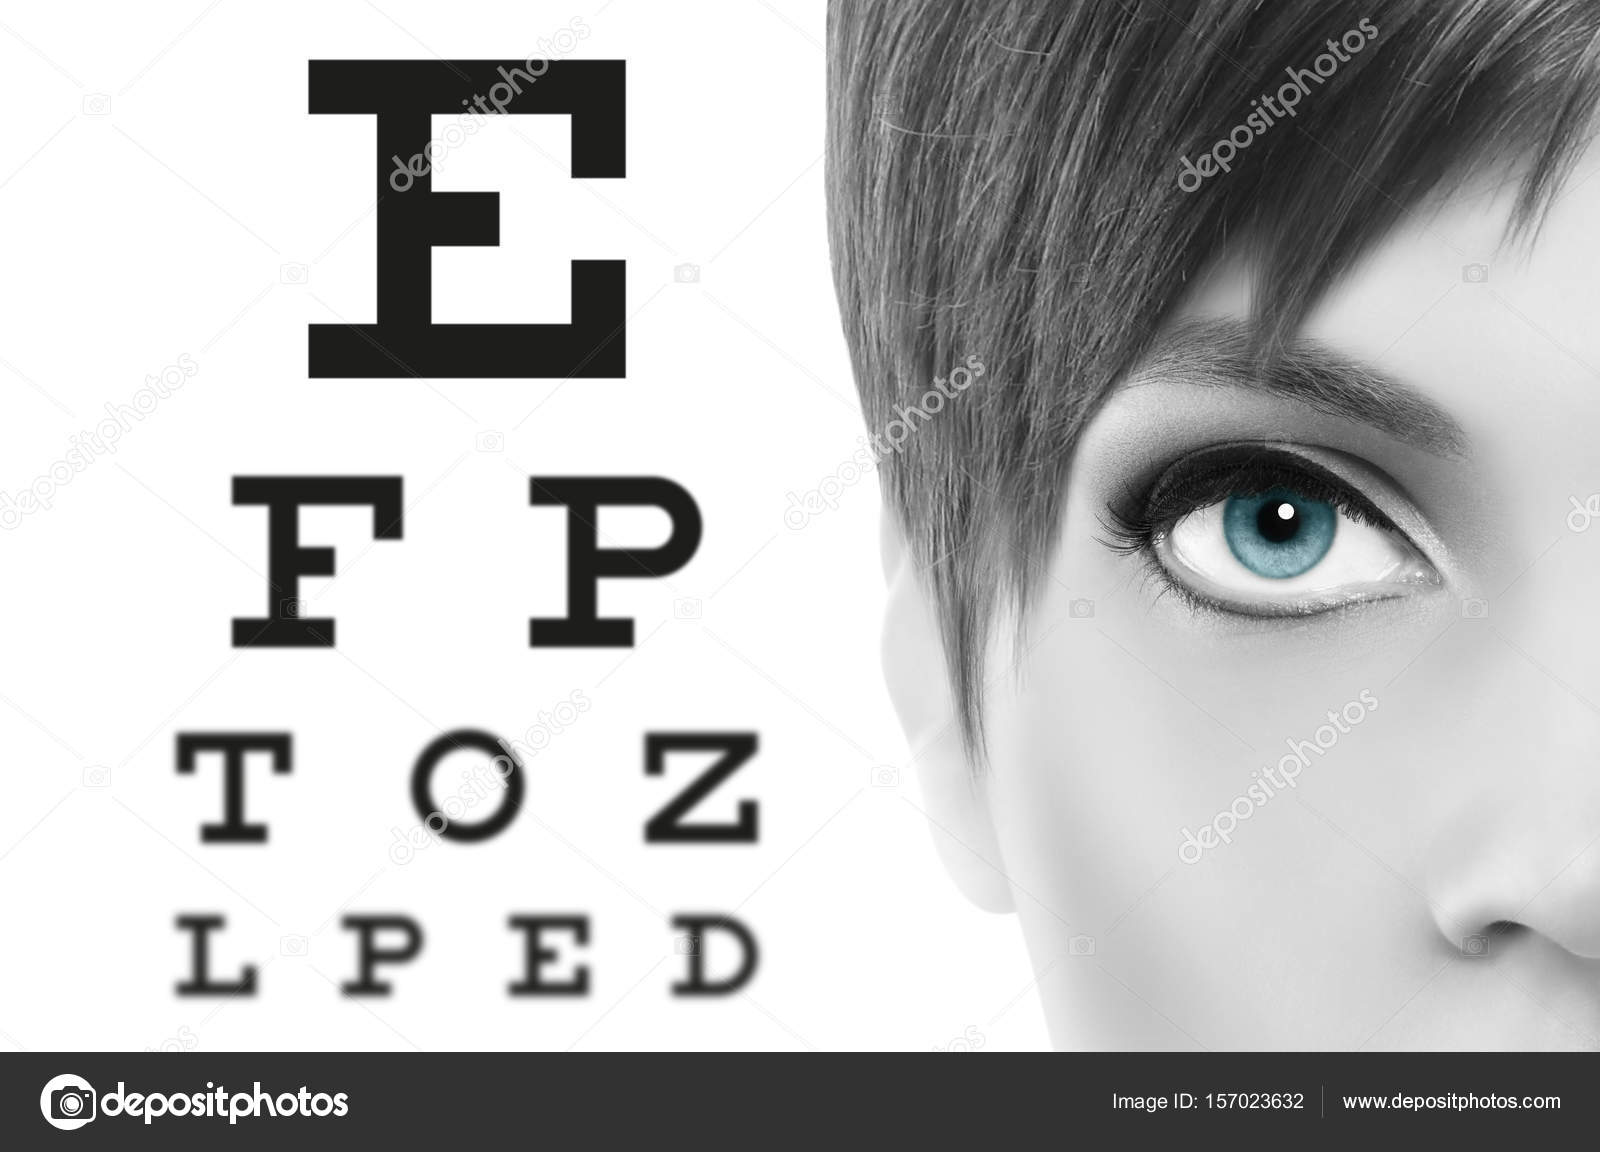 Blue eyes close up on visual test chart eyesight and eye examin blue eyes close up on visual test chart eyesight and eye examination concept in white background photo by amedeoemaja geenschuldenfo Gallery